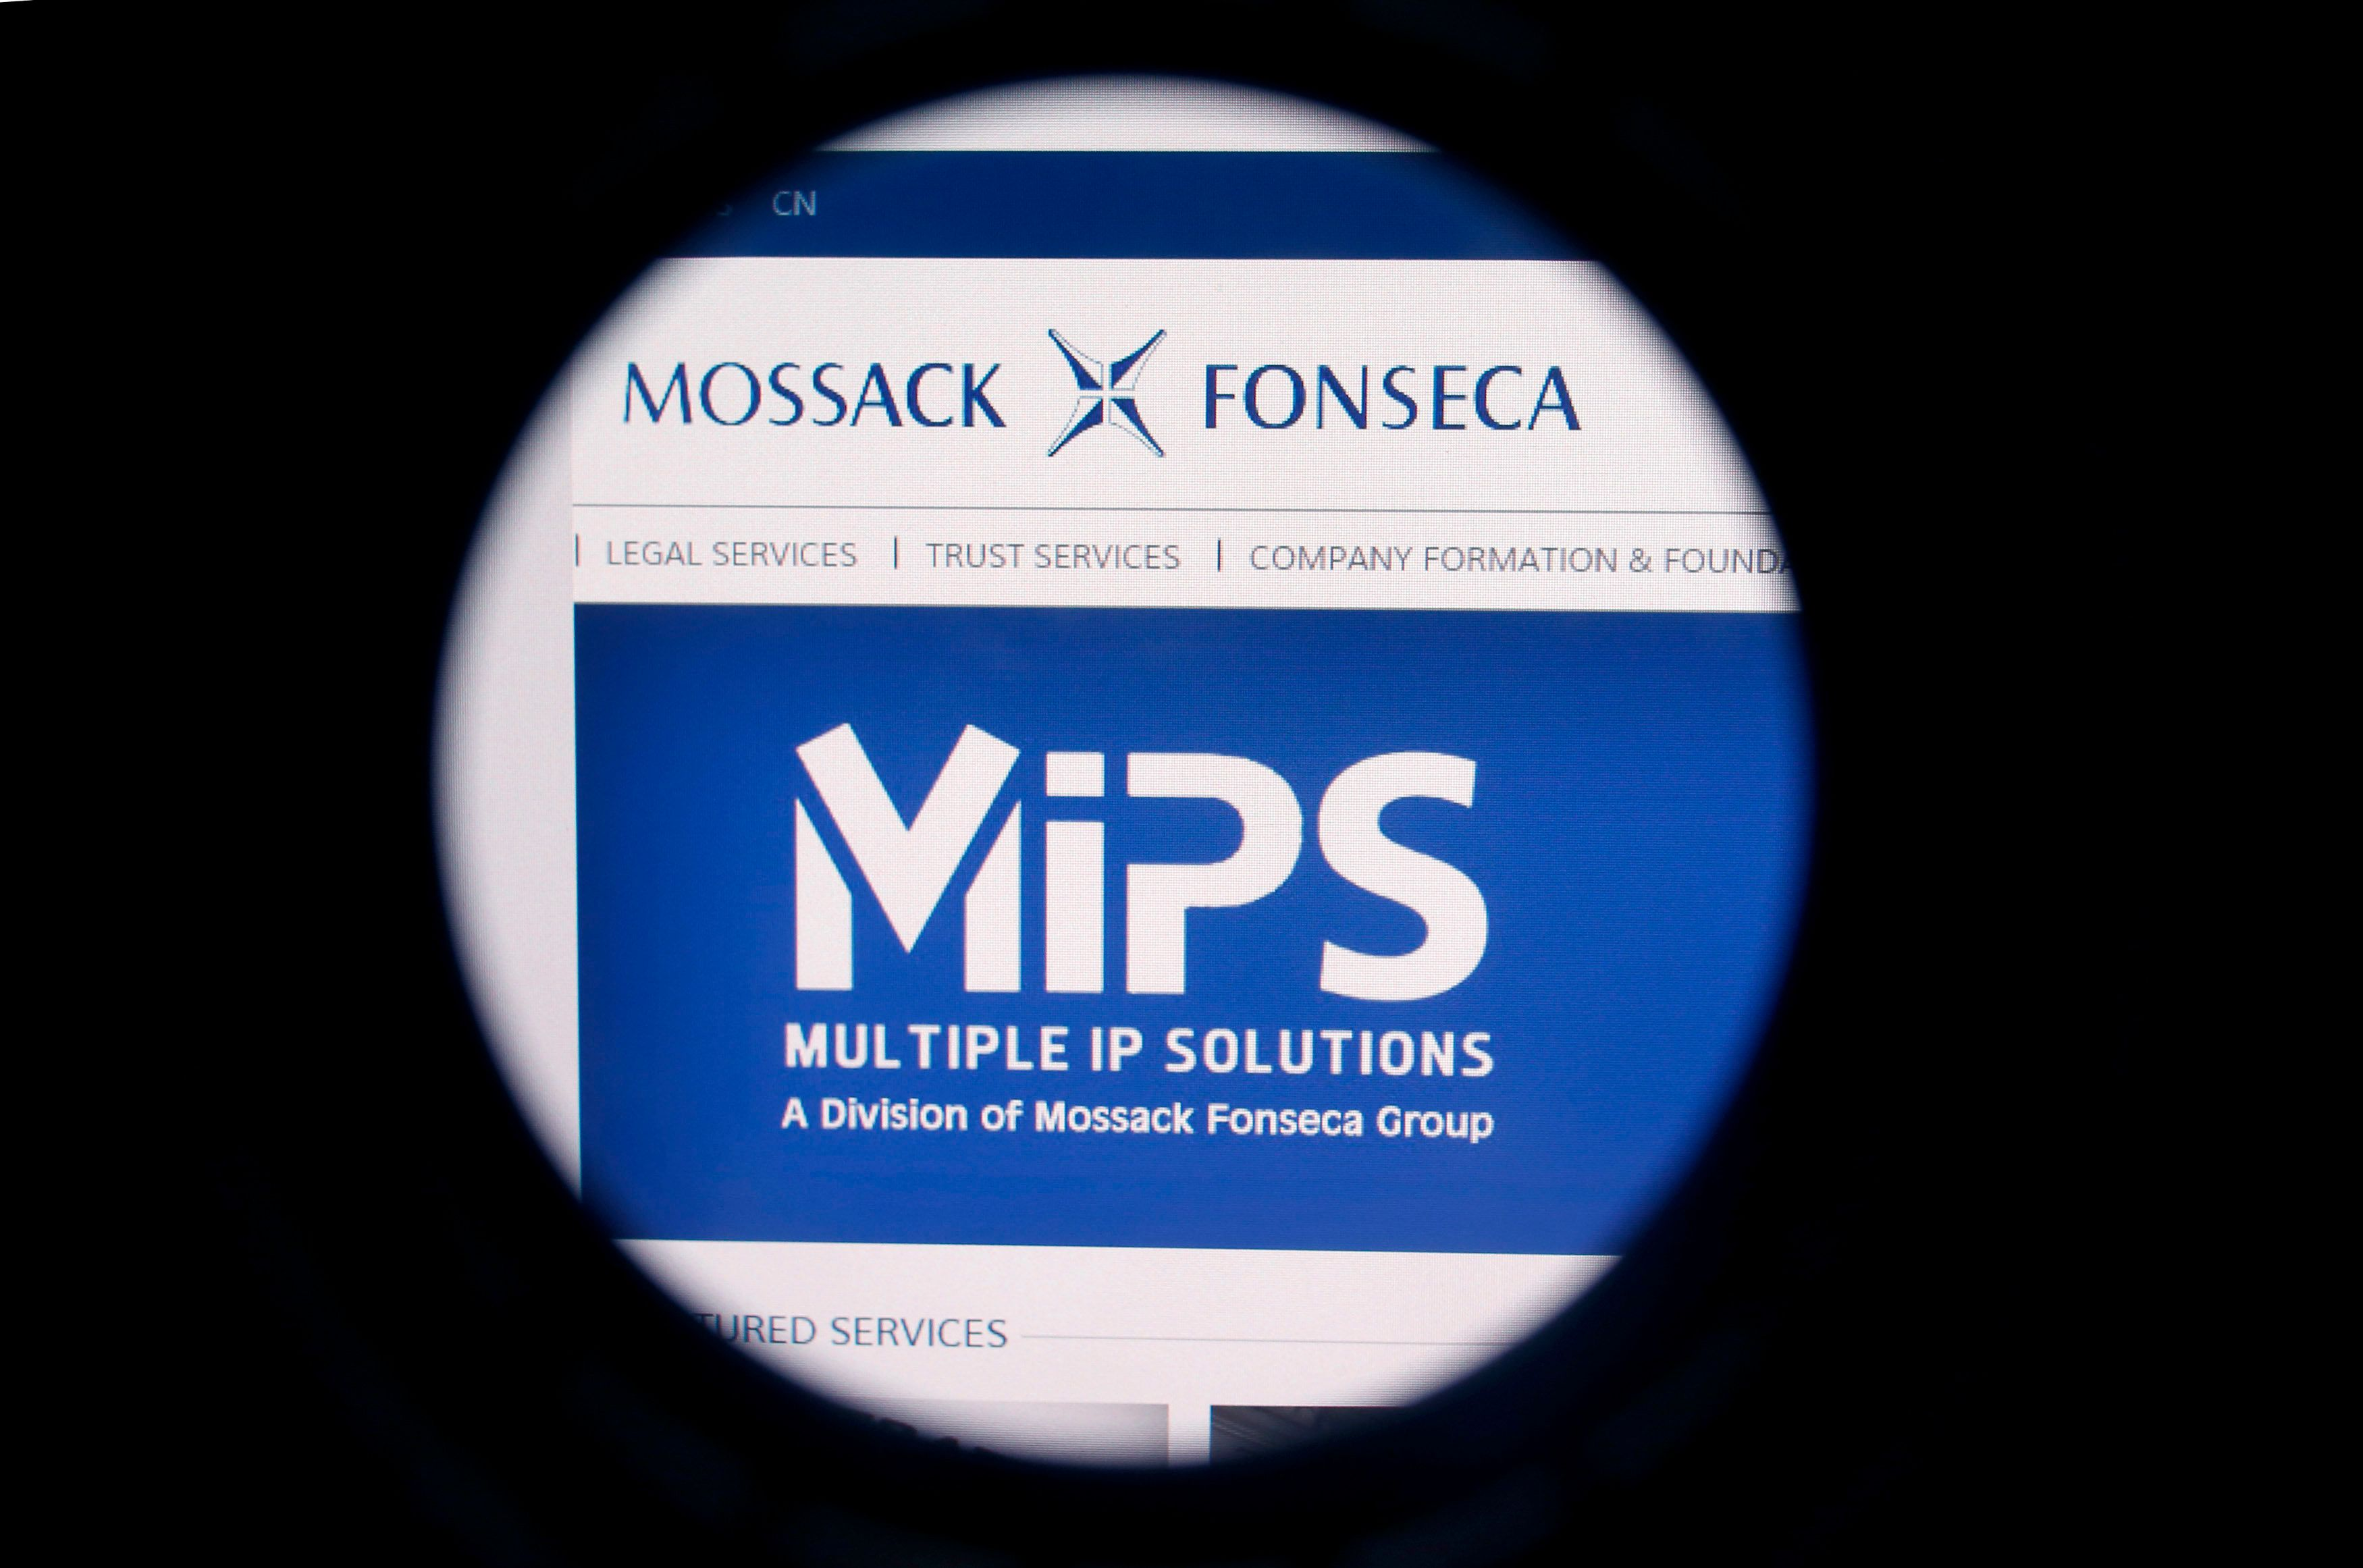 The website of the Mossack Fonseca law firm is pictured through a large format lens in Bad Honnef, Germany April 4, 2016.  REUTERS/Wolfgang Rattay